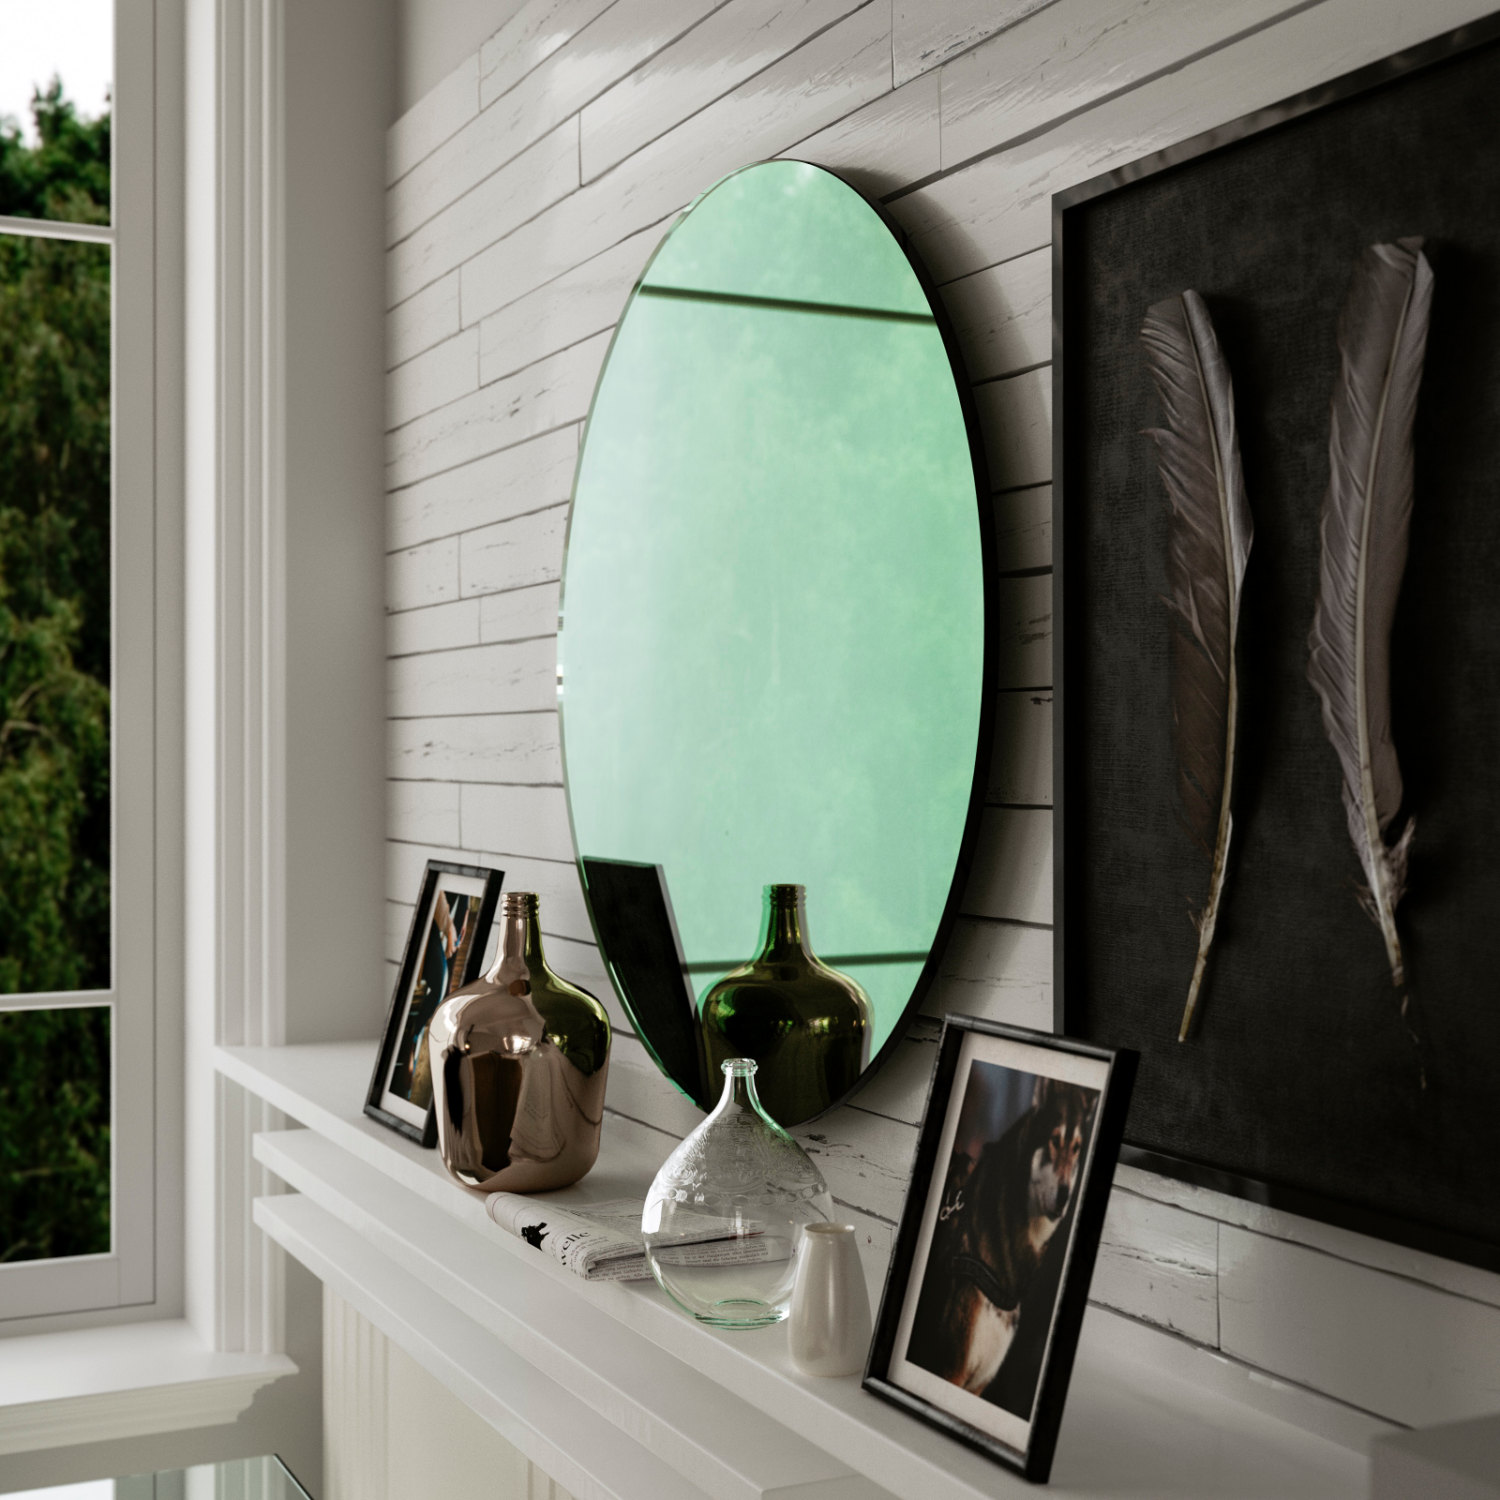 Round Green mirror photographed from the side